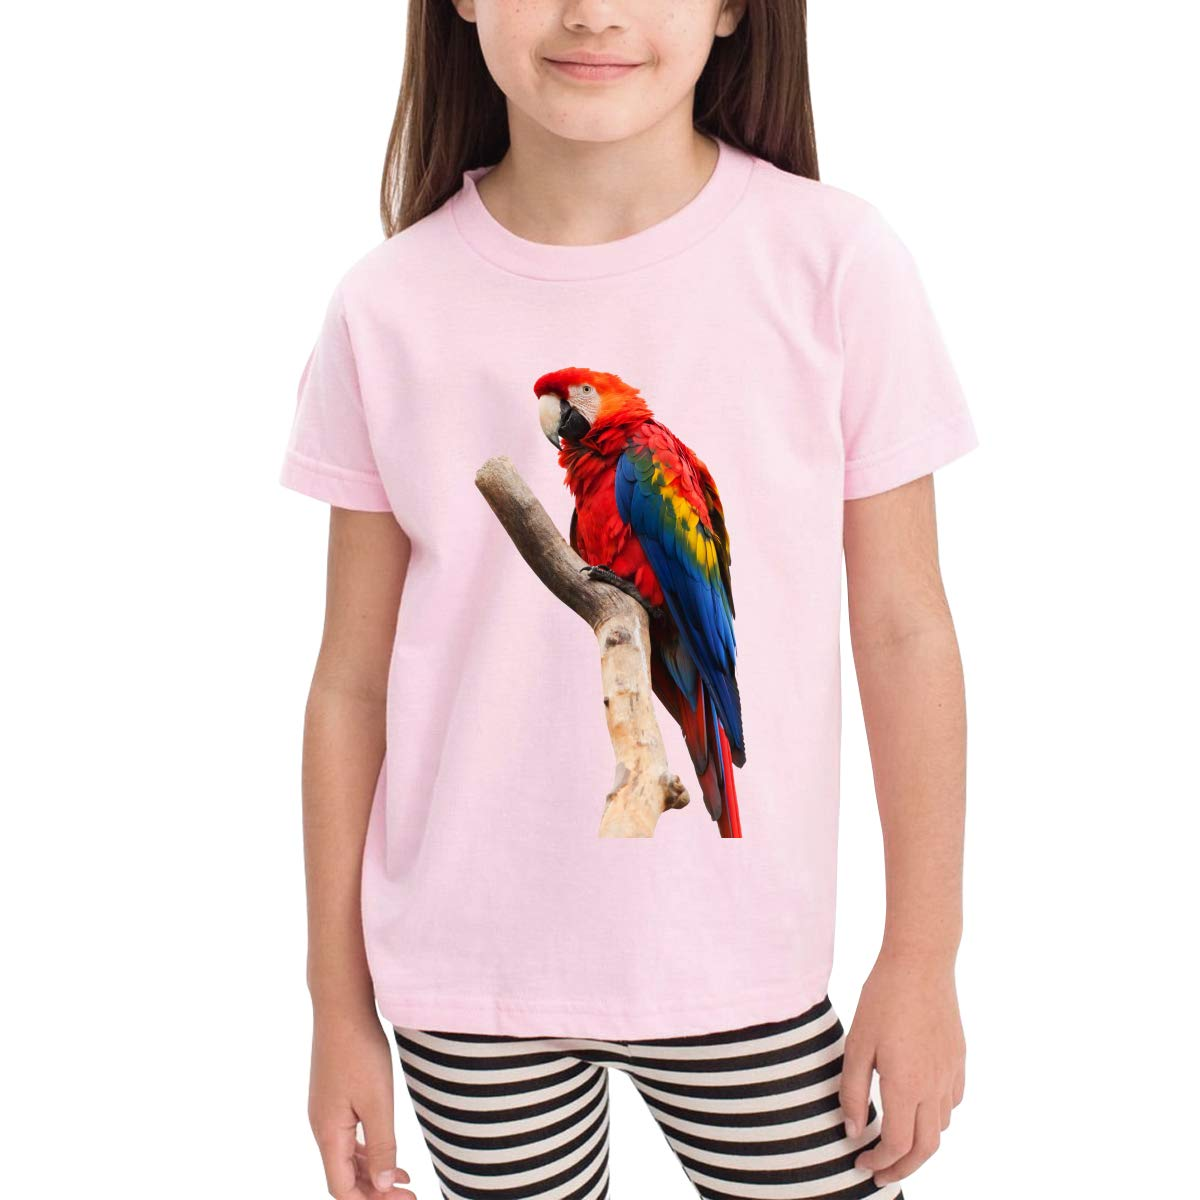 Red Parrot 100/% Cotton Toddler Baby Boys Girls Kids Short Sleeve T Shirt Top Tee Clothes 2-6 T